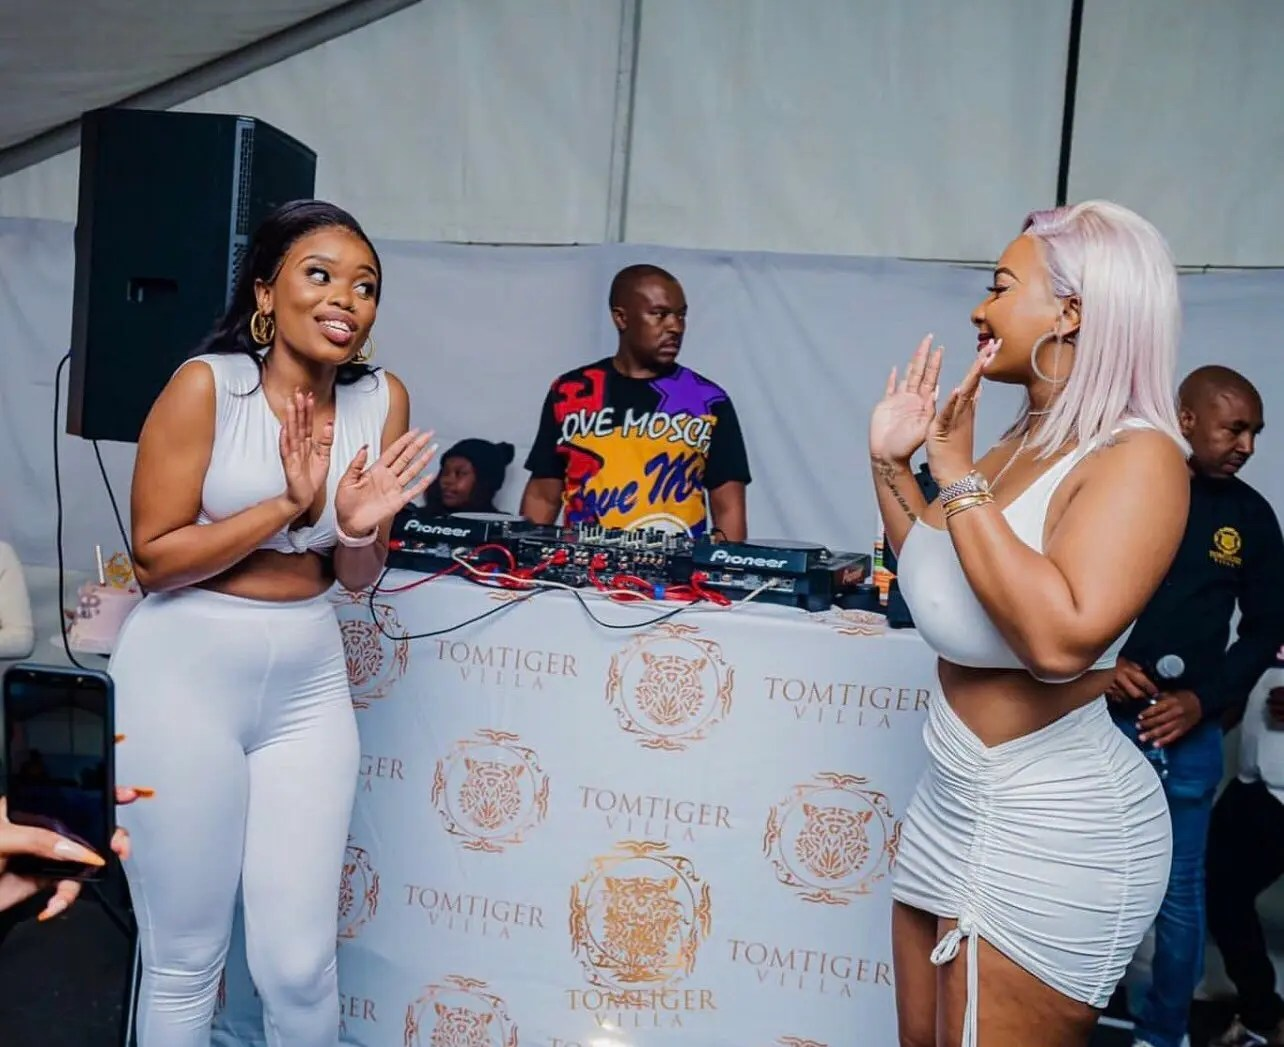 Boity complains after being body shamed